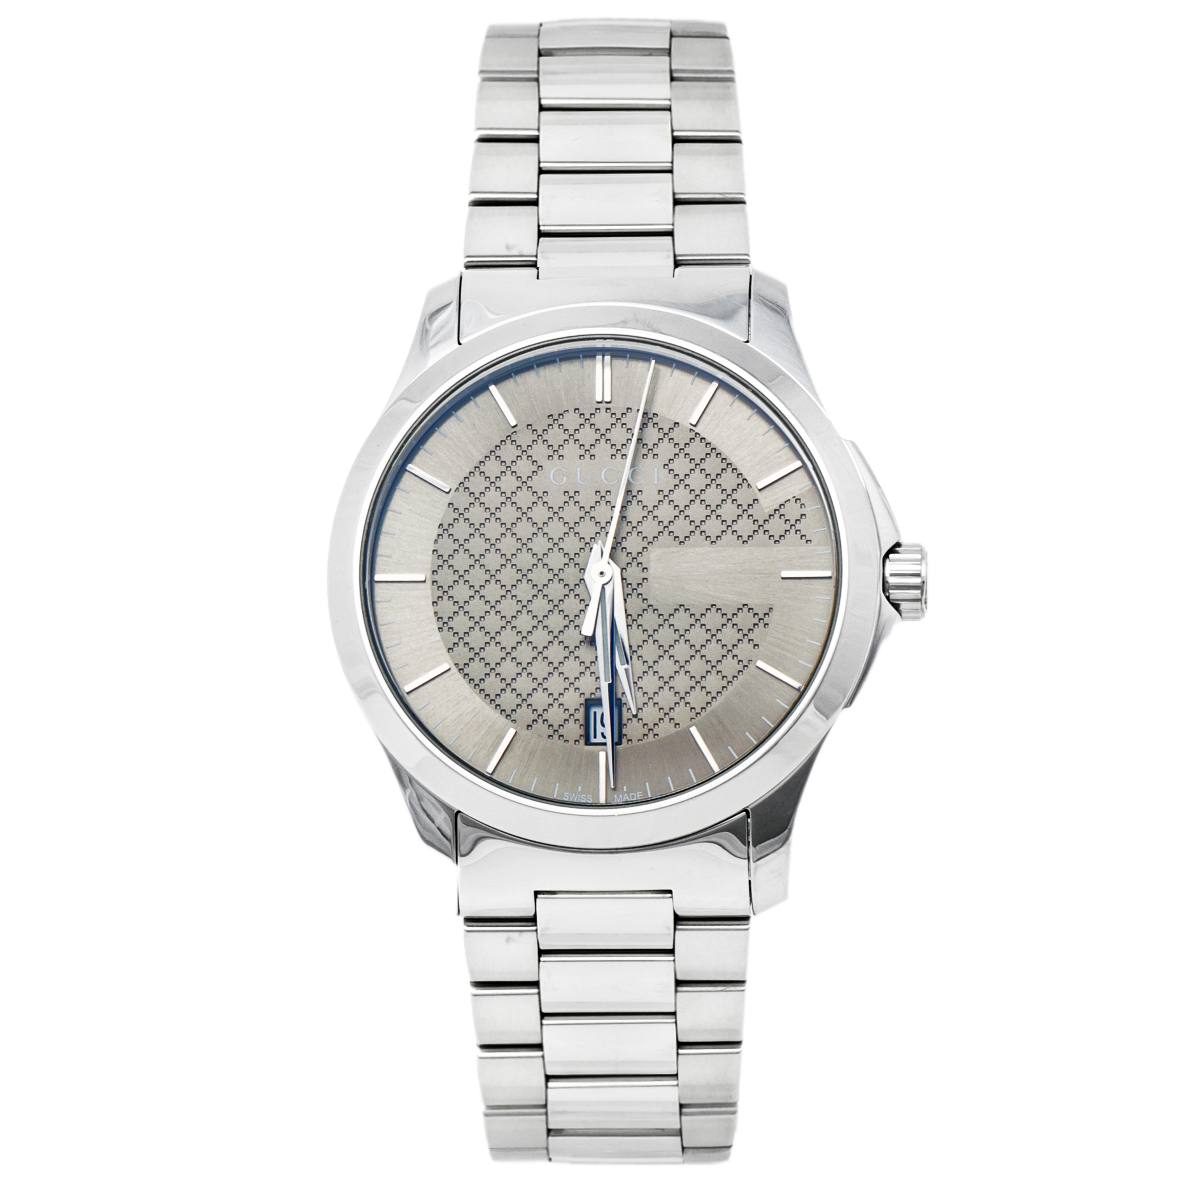 GUCCI SILVER GREY STAINLESS STEEL G-TIMELESS 126.4 MEN'S WRISTWATCH 38 MM